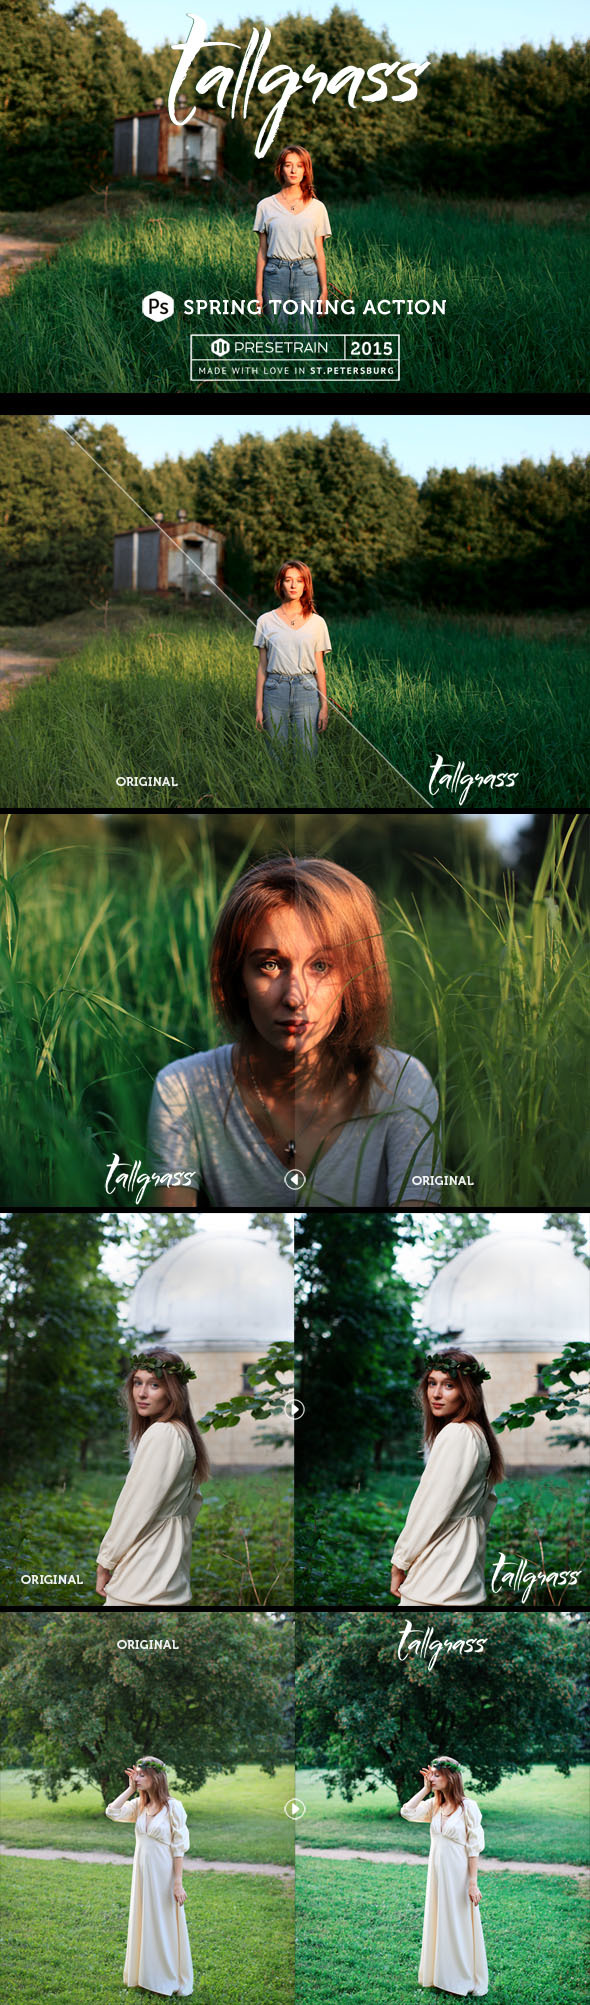 Tallgrass Photoshop Action - Photo Effects Actions